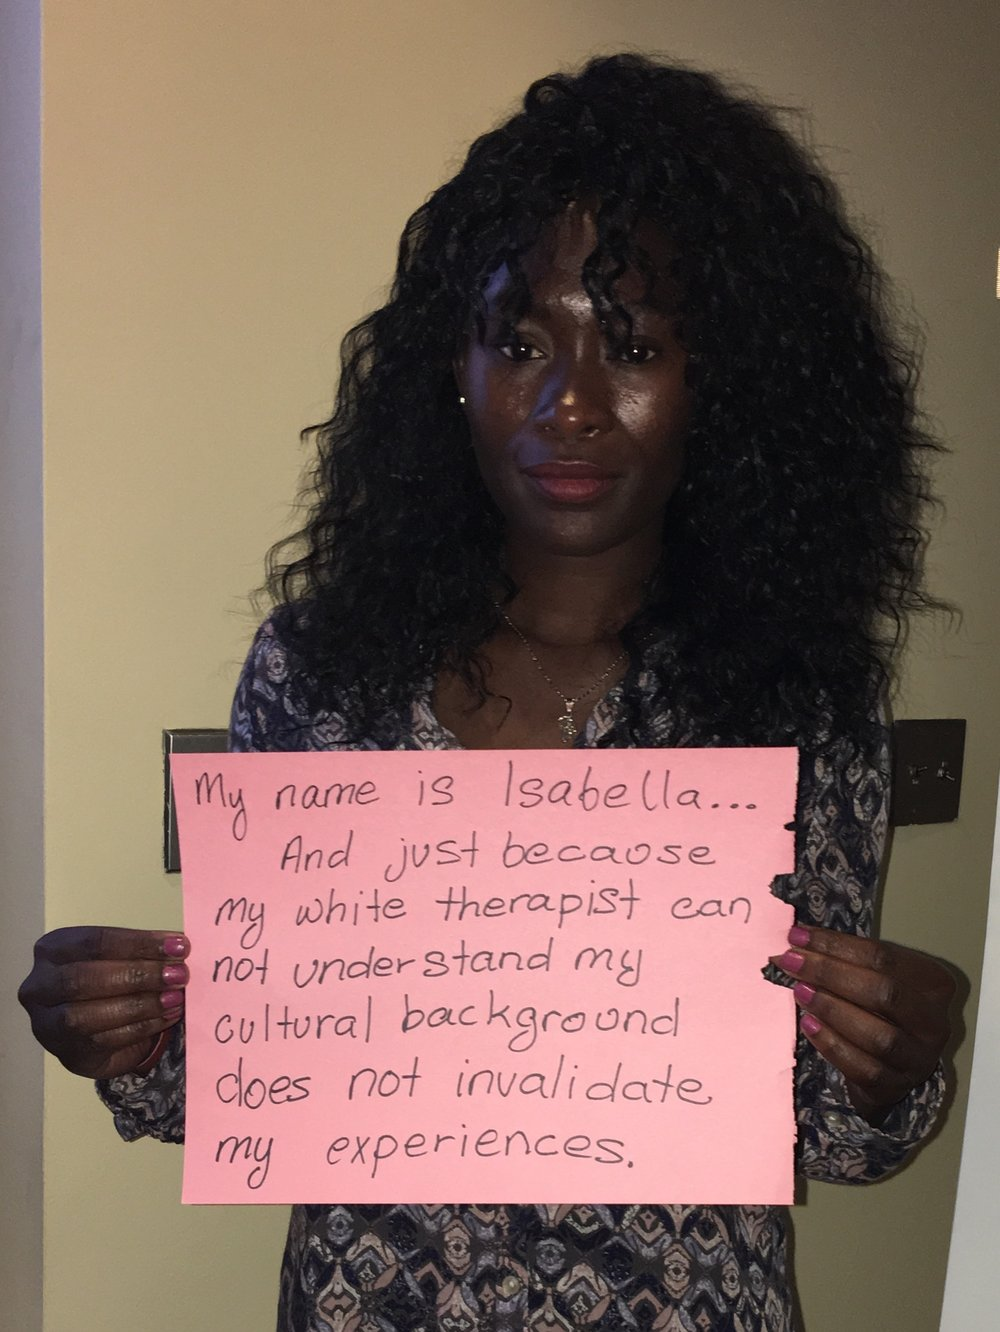 Sign: My name is Isabella...and just because my white therapist cannot understand my cultural background does not invalidate my experiences.